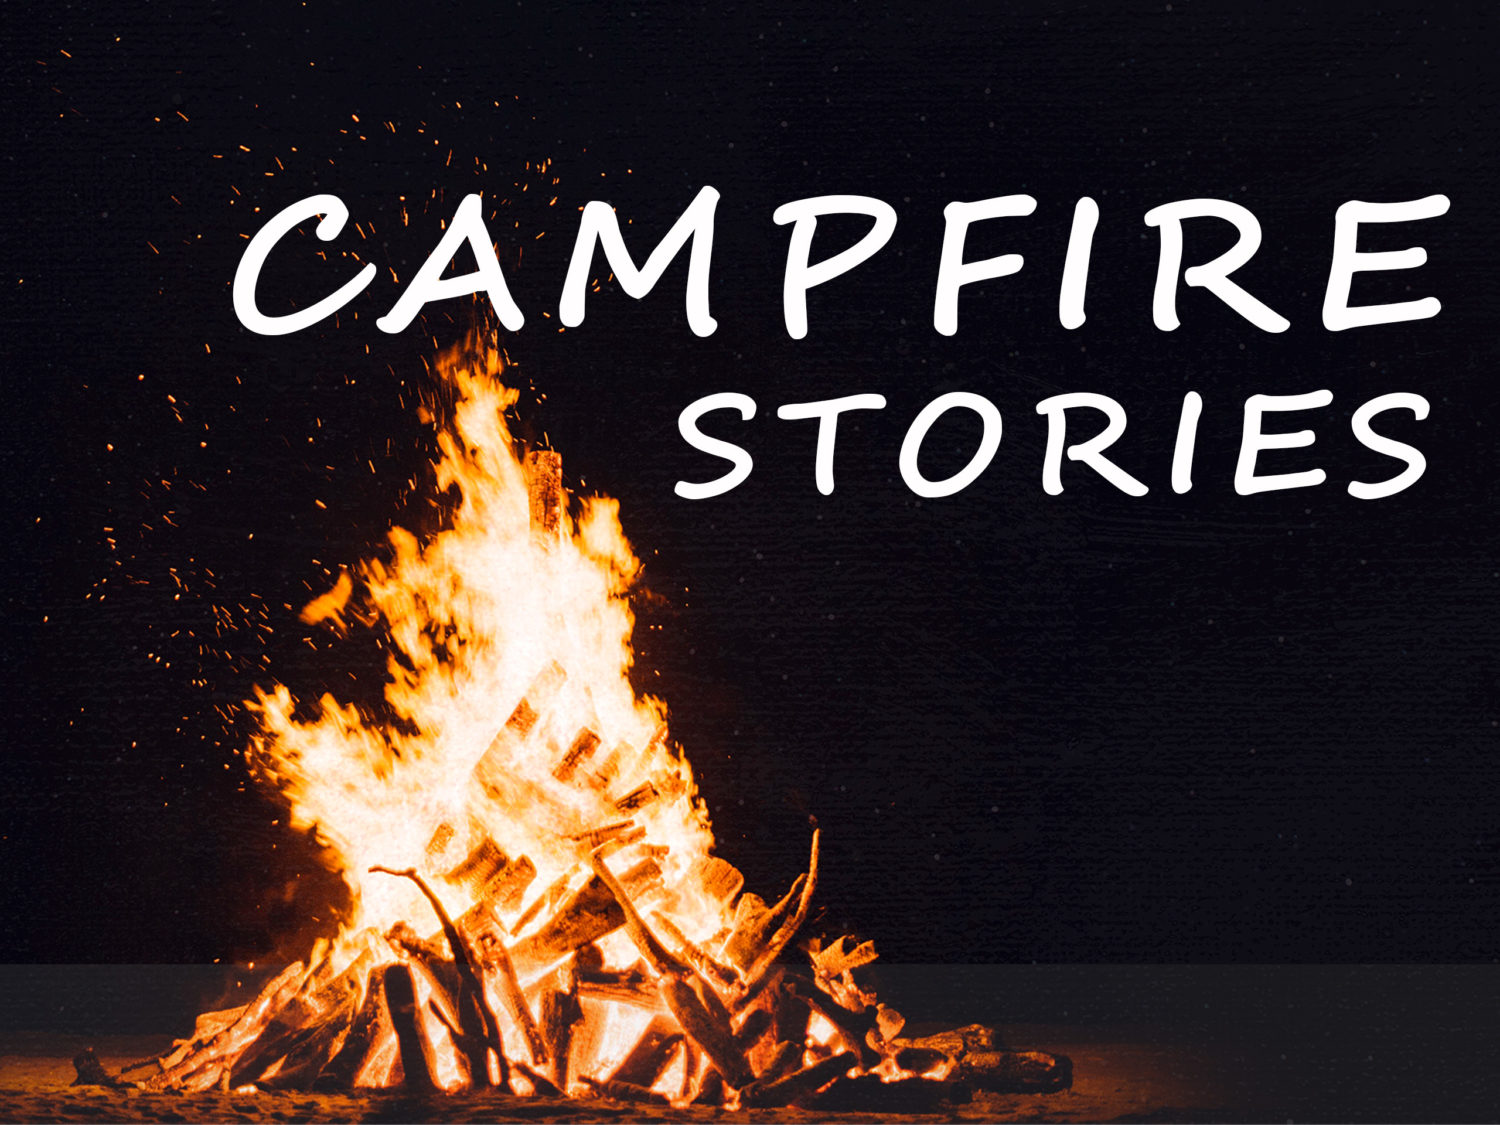 5. Campfire Stories – Outnumbered!